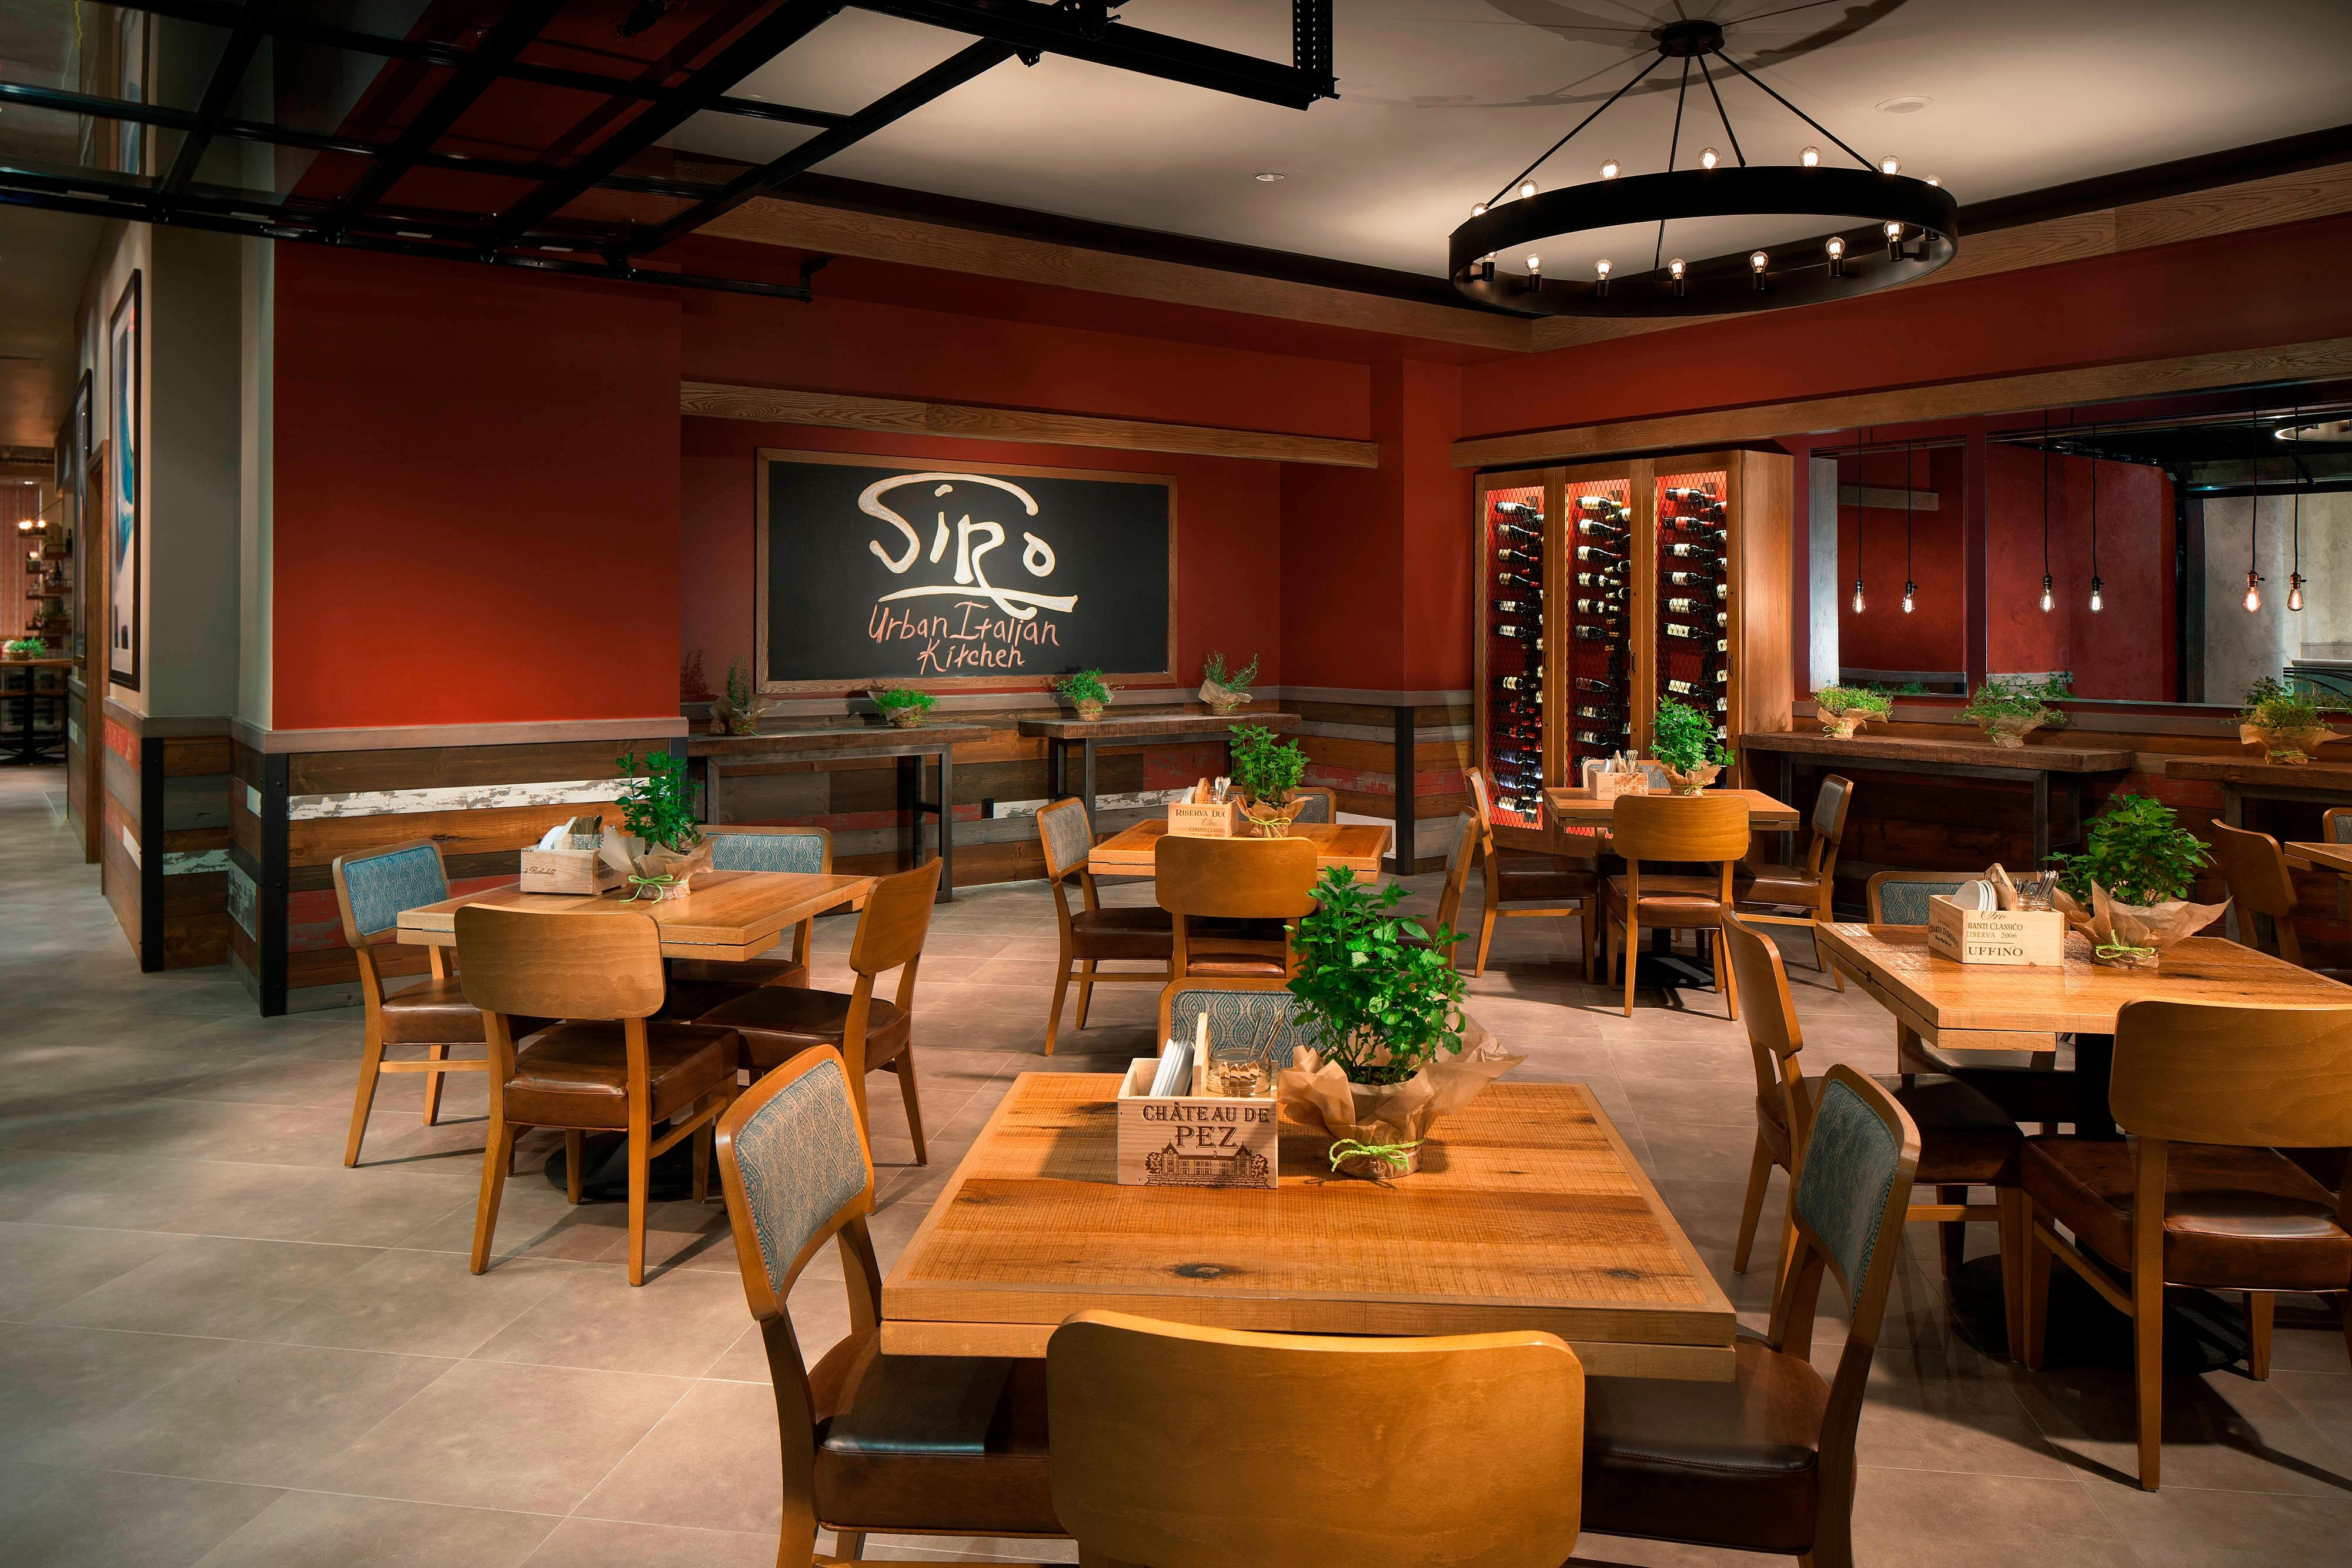 Siro Urban Italian Kitchen